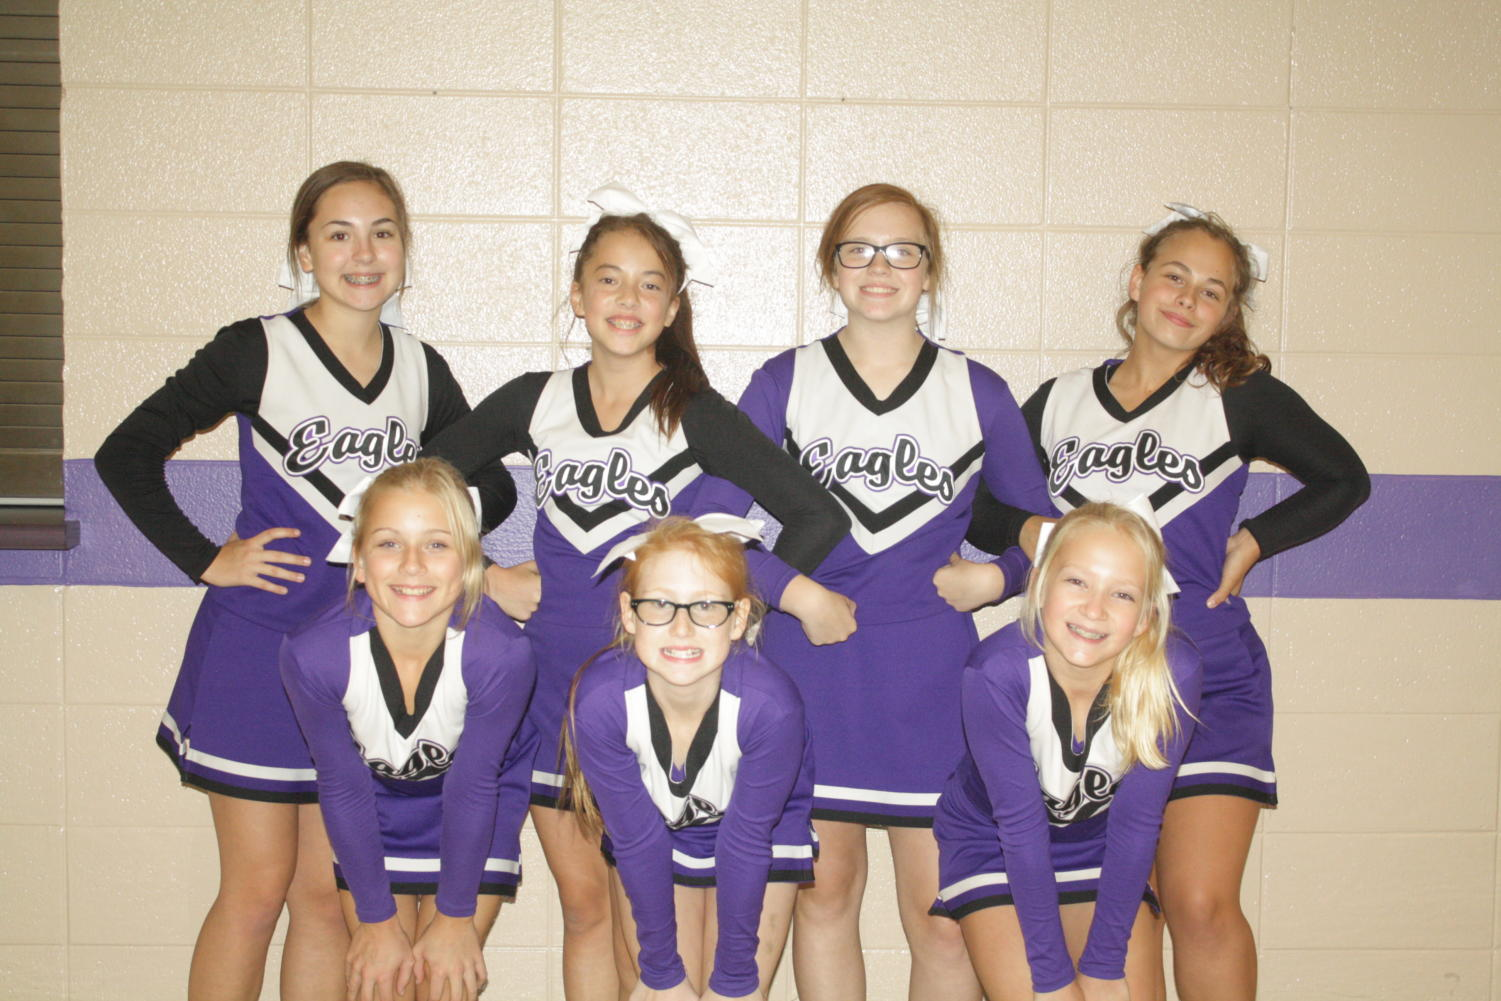 Middle school cheerleaders posing after a night of cheering